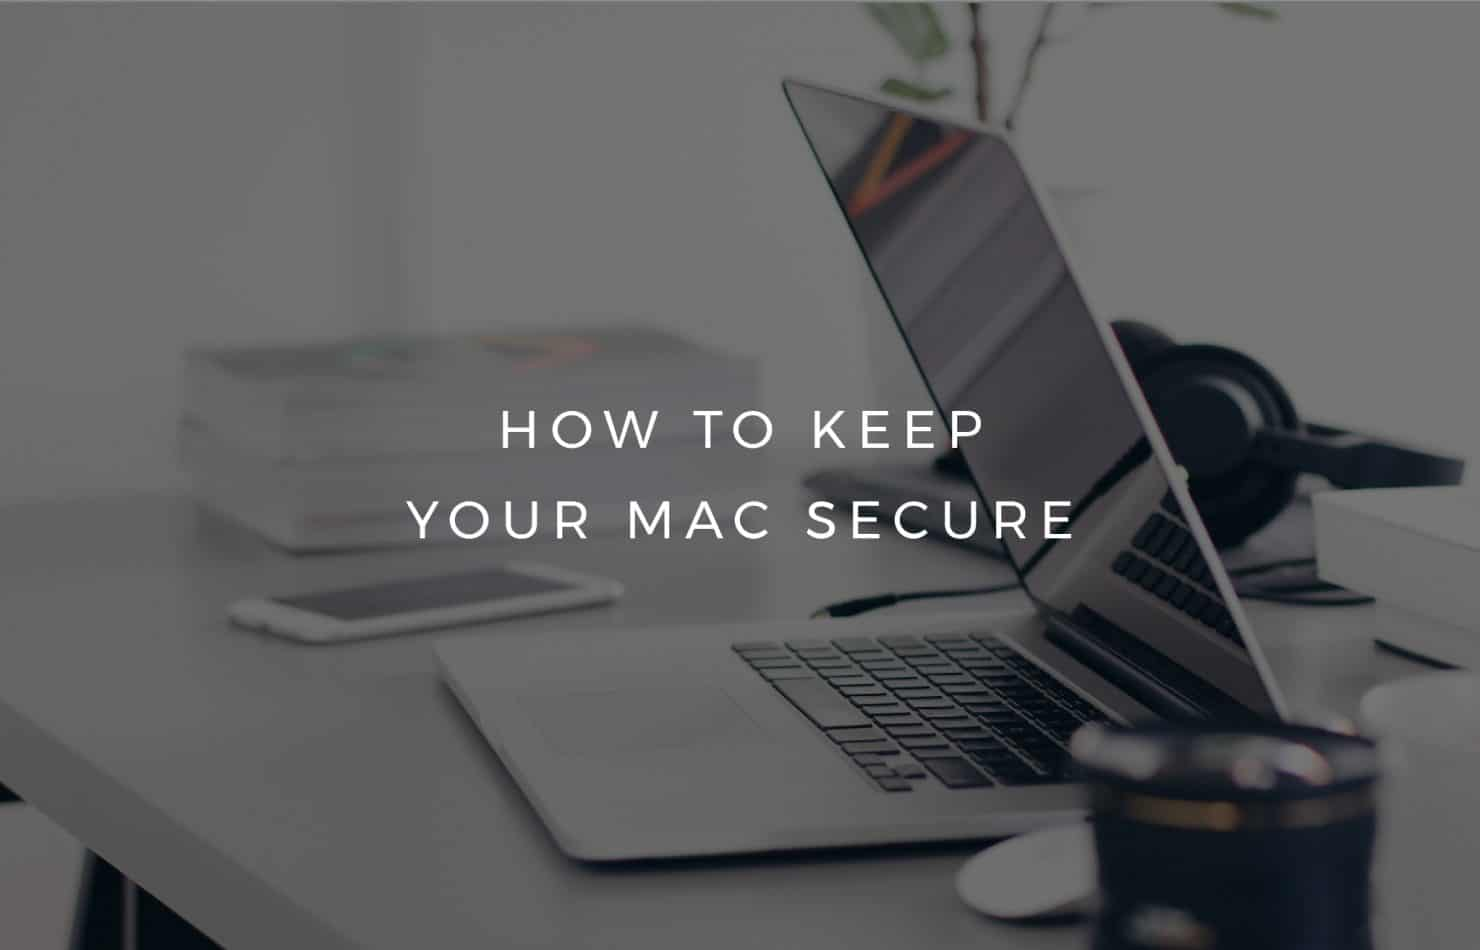 How to keep your Mac secure